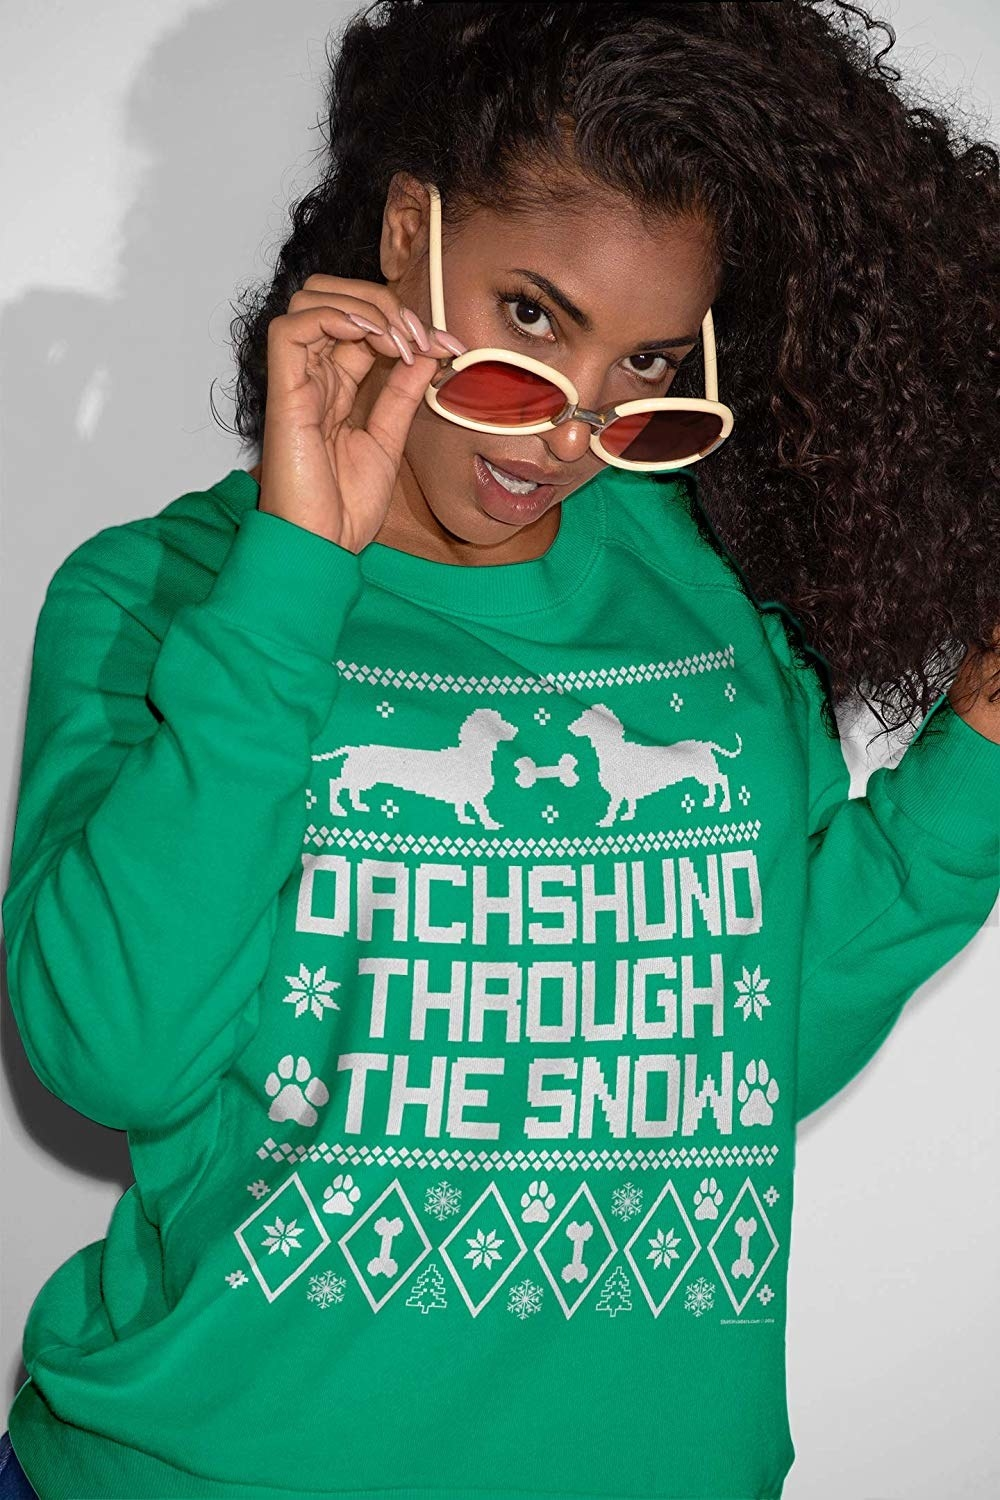 """A model in the green sweatshirt that says """"dachshund though the snow"""""""